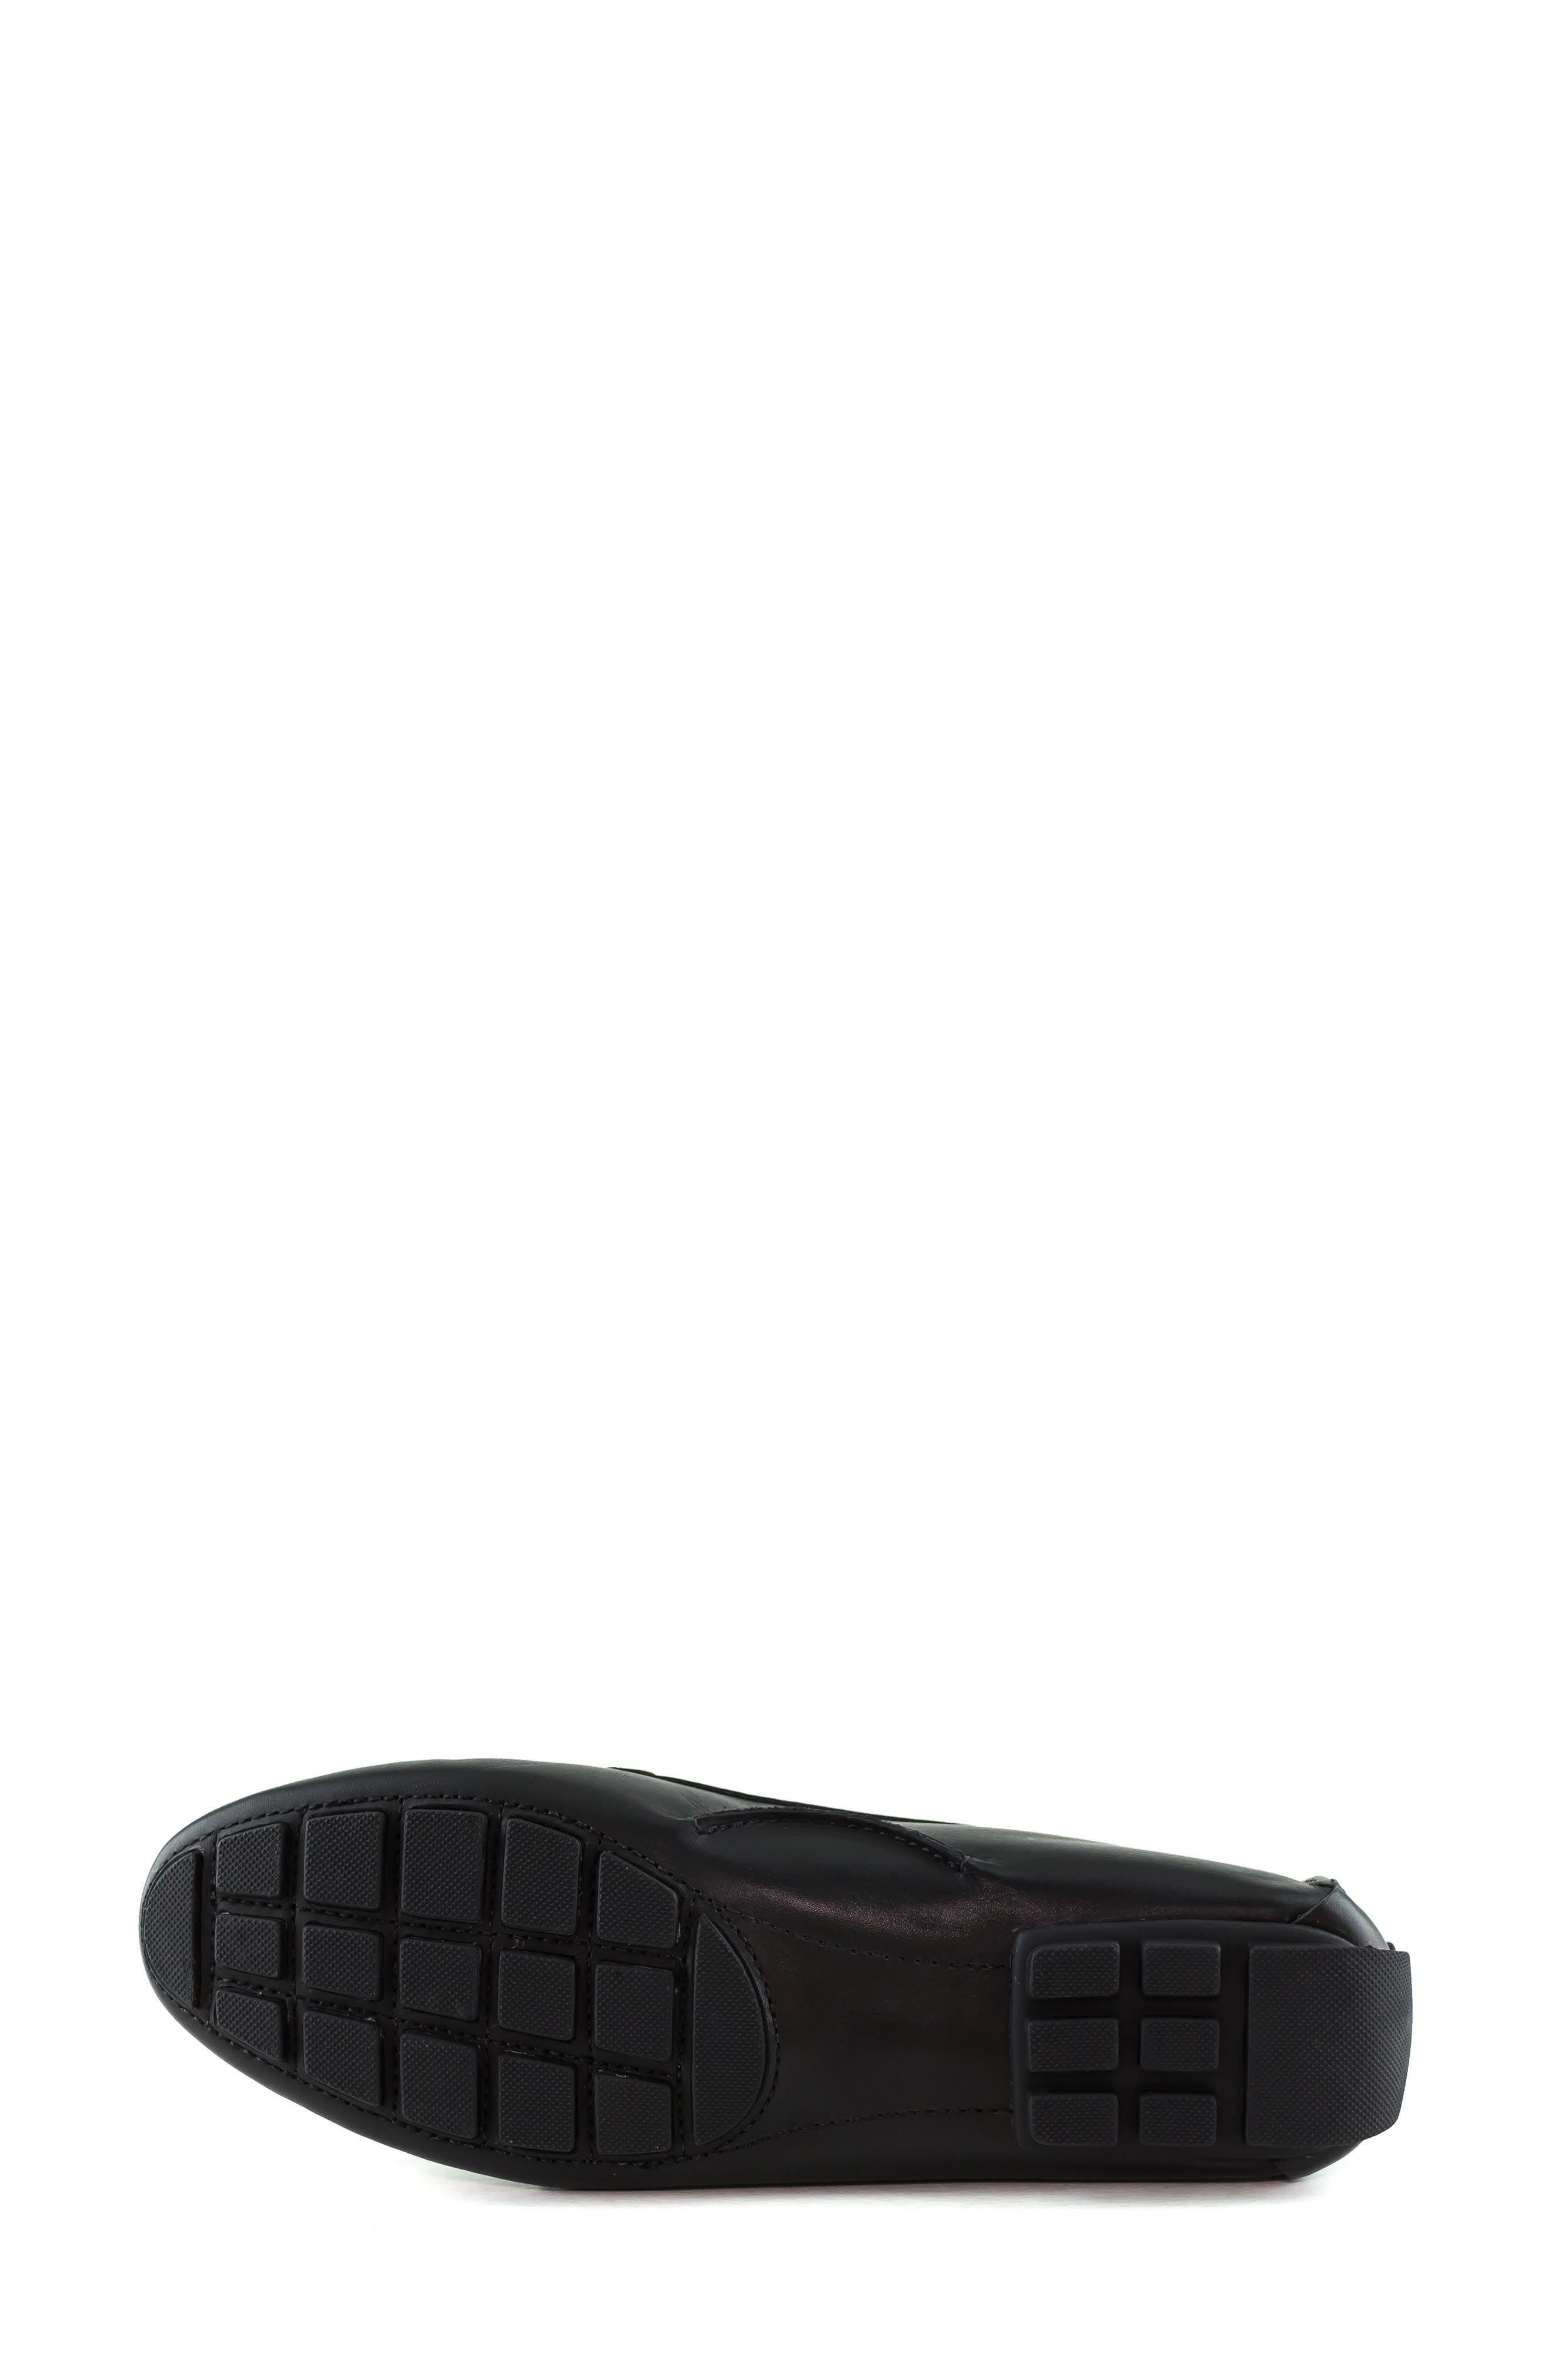 MARC JOSEPH NEW YORK, South Street Loafer, Alternate thumbnail 6, color, BLACK LEATHER